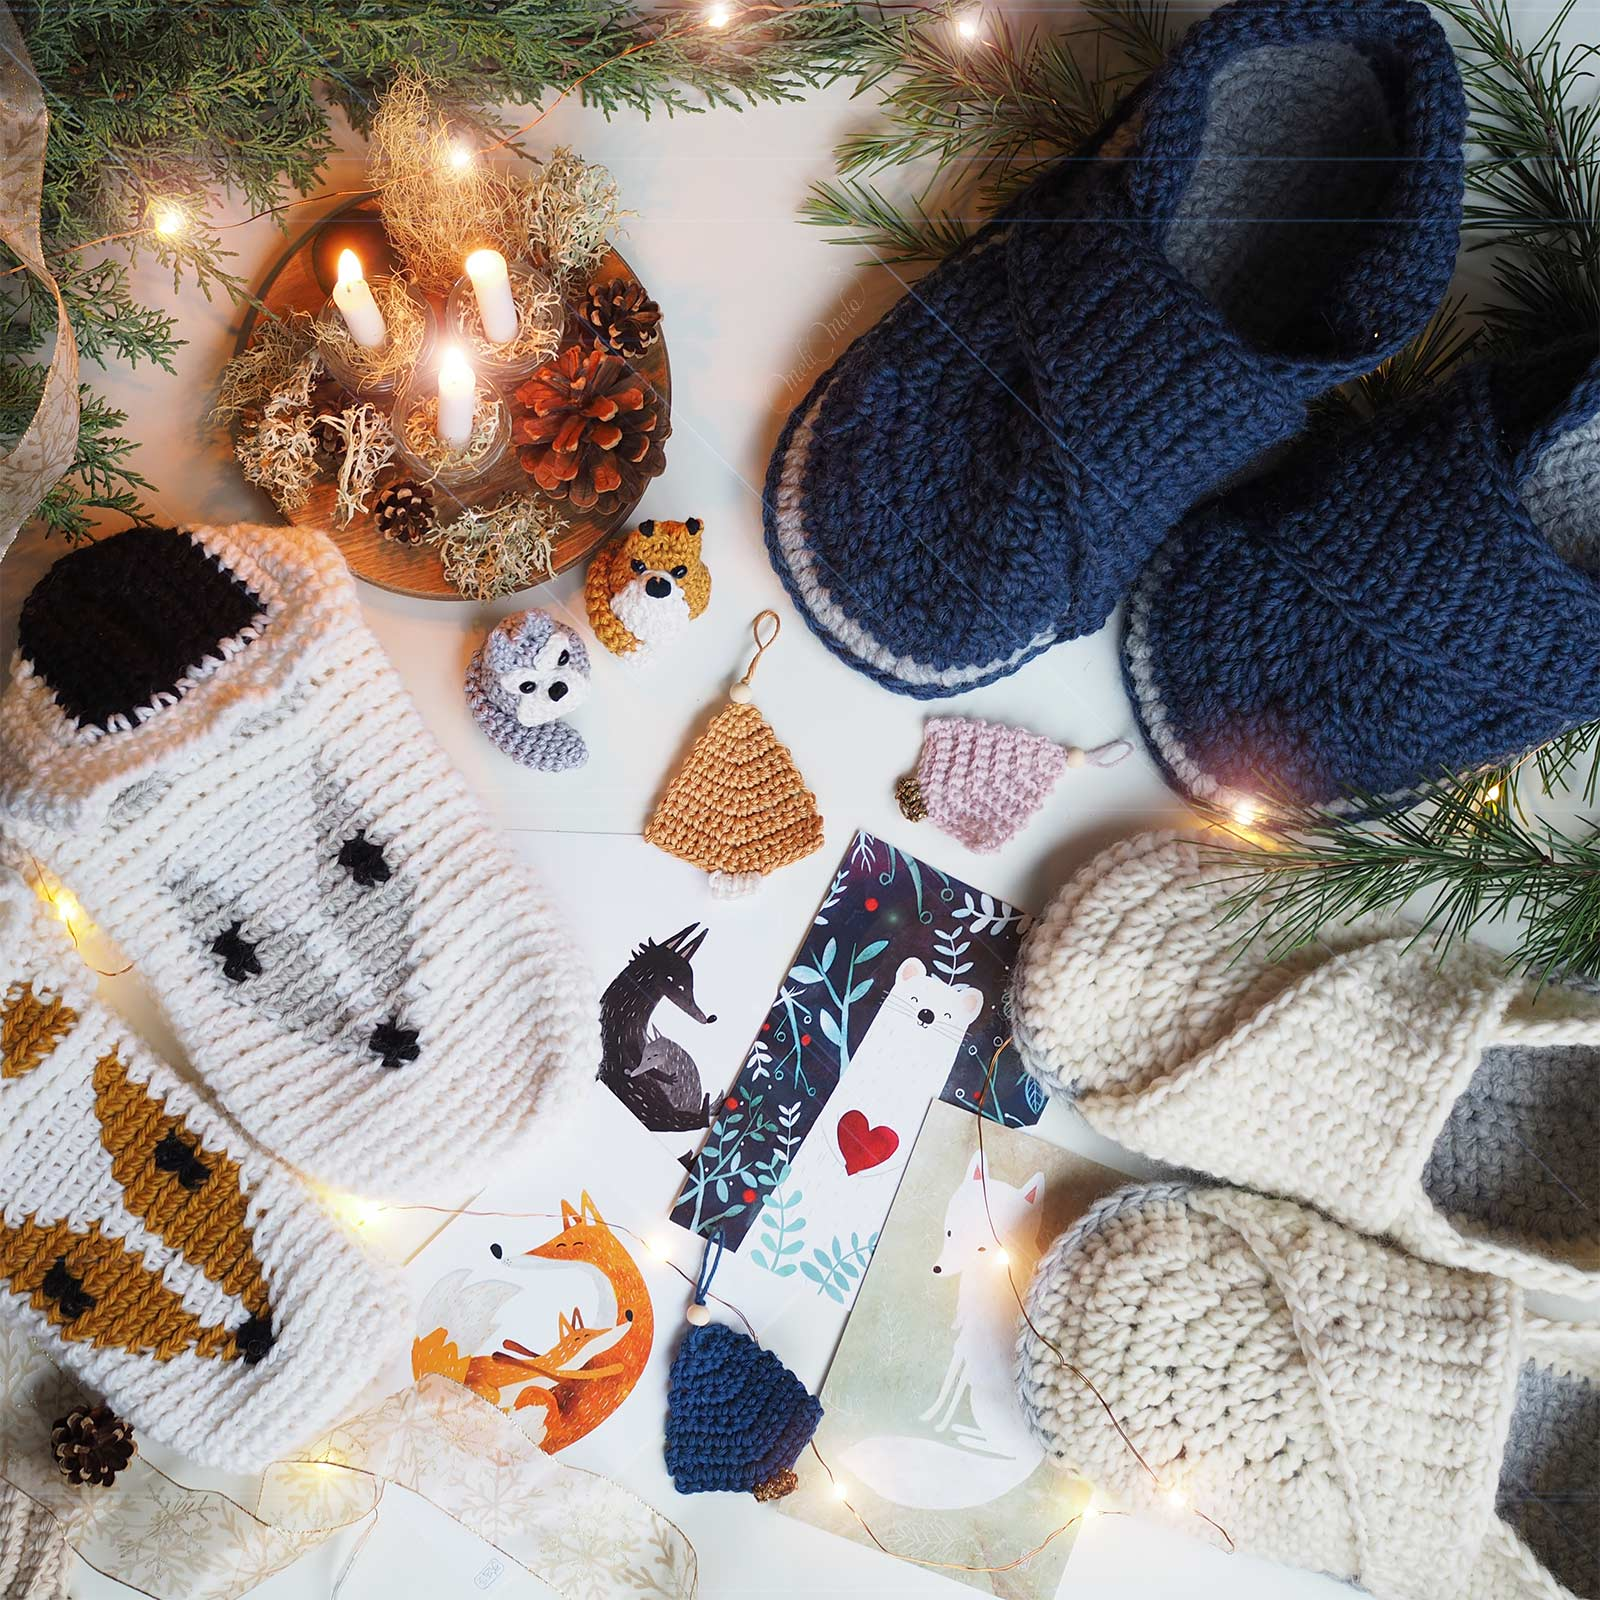 crochet-chaussons-laine-slippers-wool-laboutiquedemelimelo-